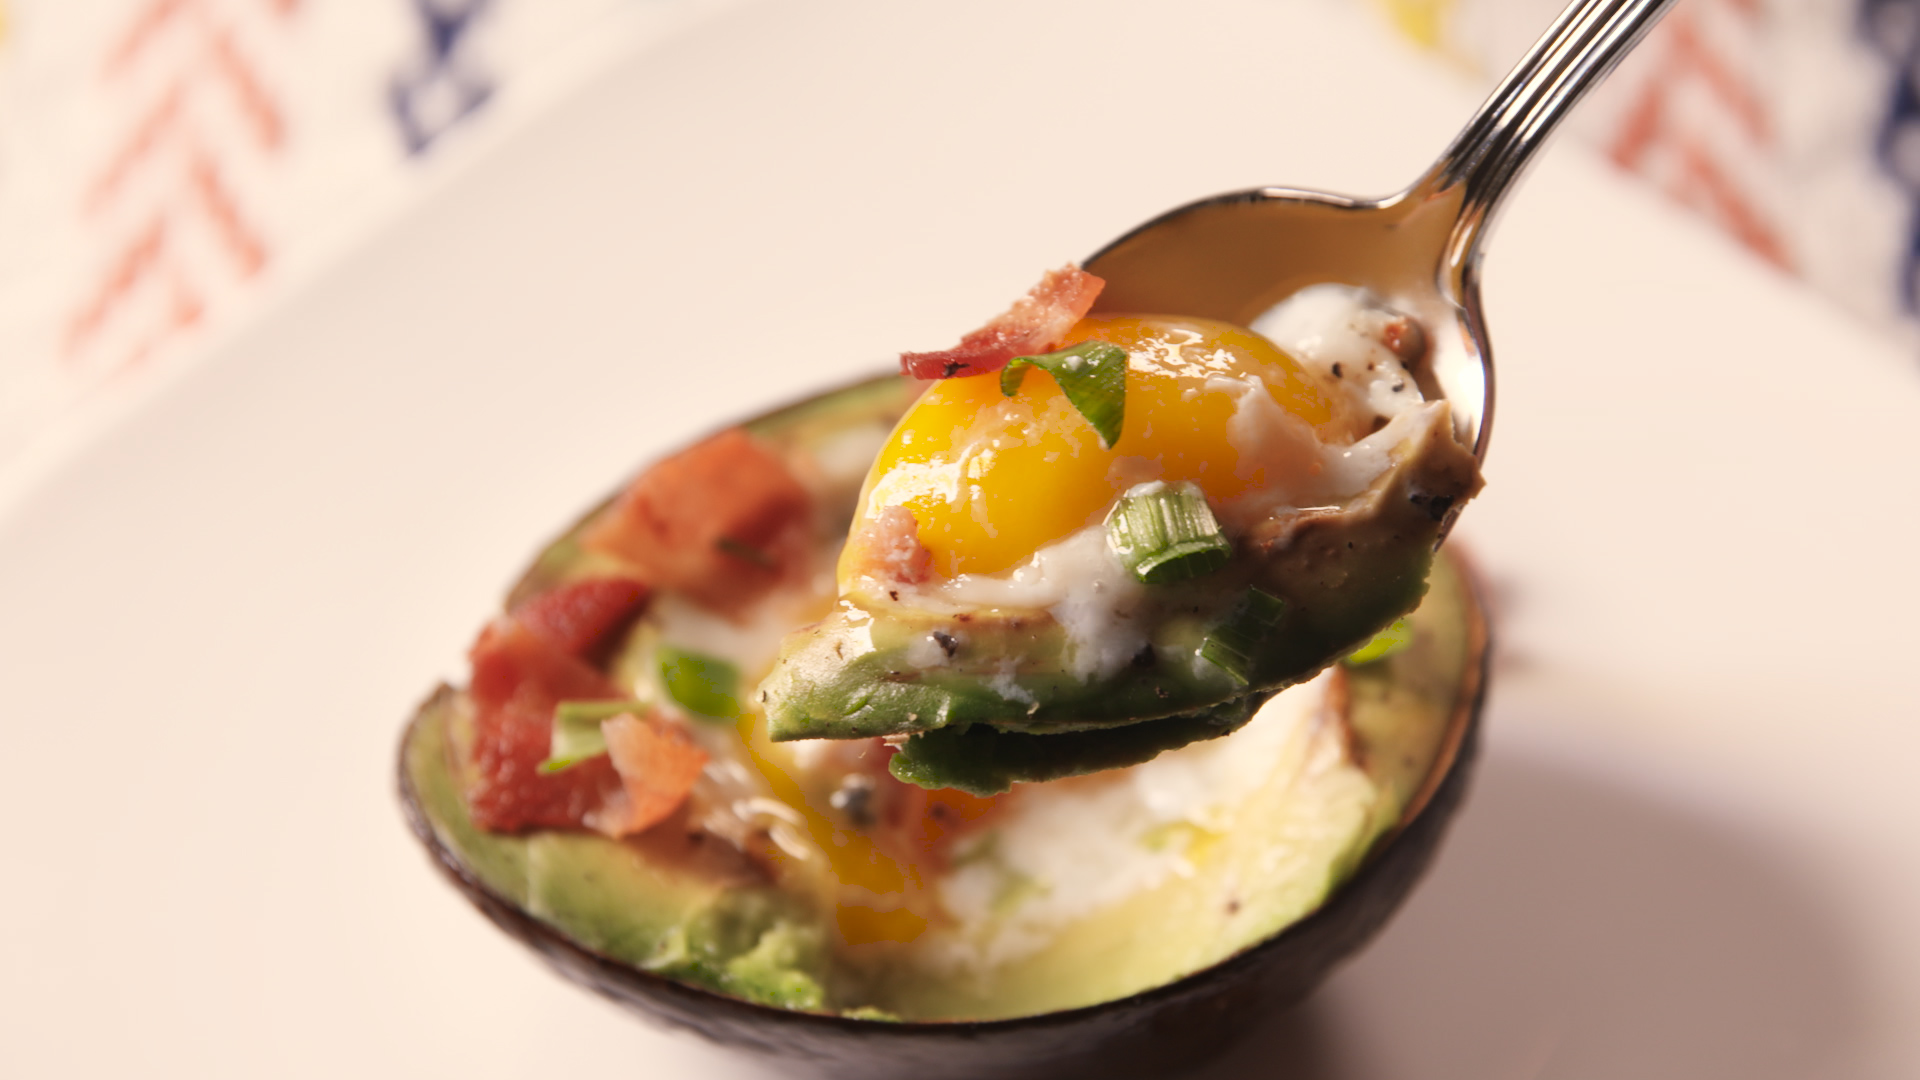 How to Make Avocado Egg Boats